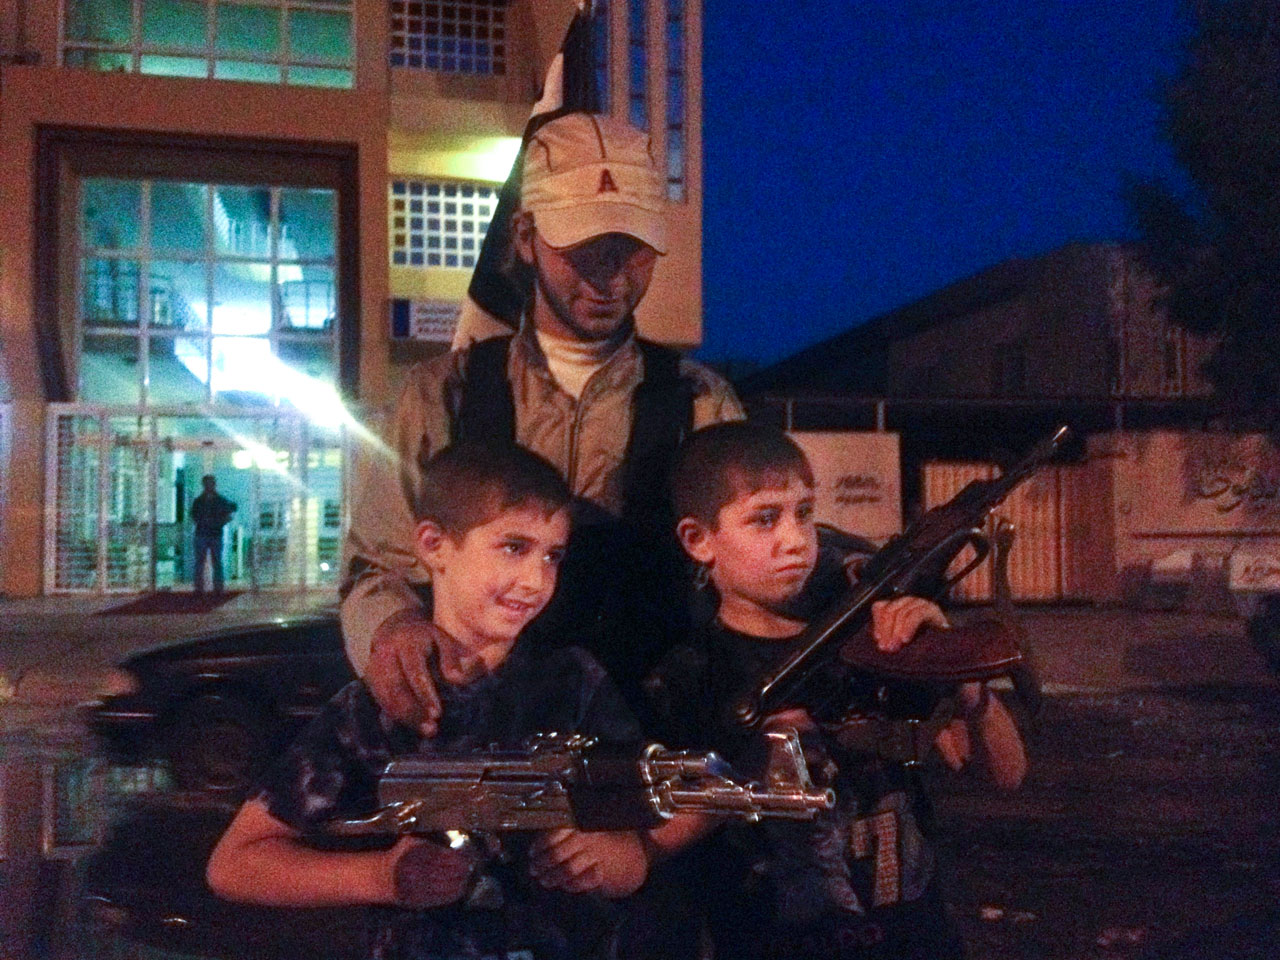 Child soldiers become integral part of ISIS' army